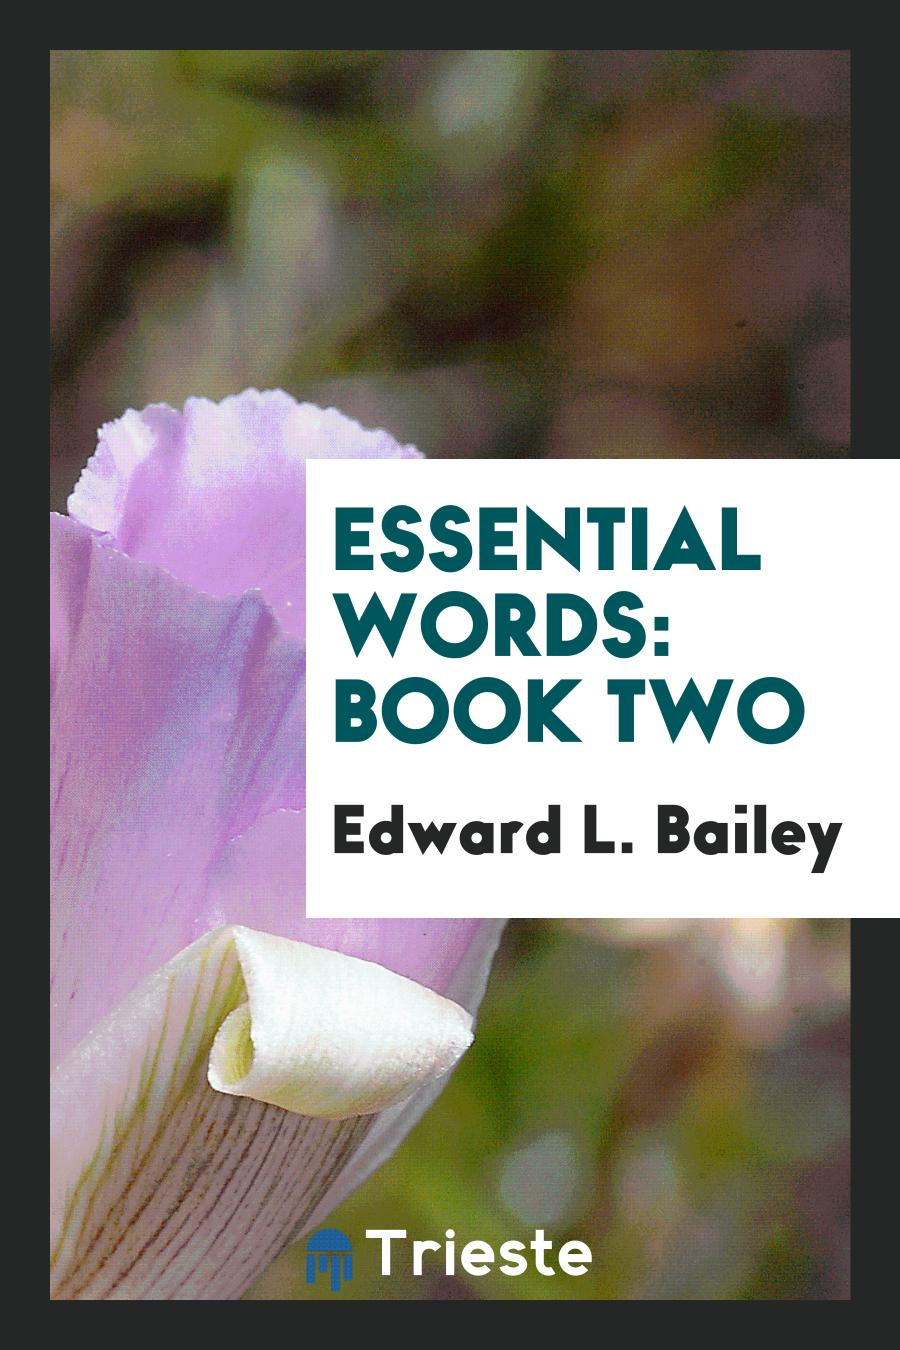 Essential Words: Book Two